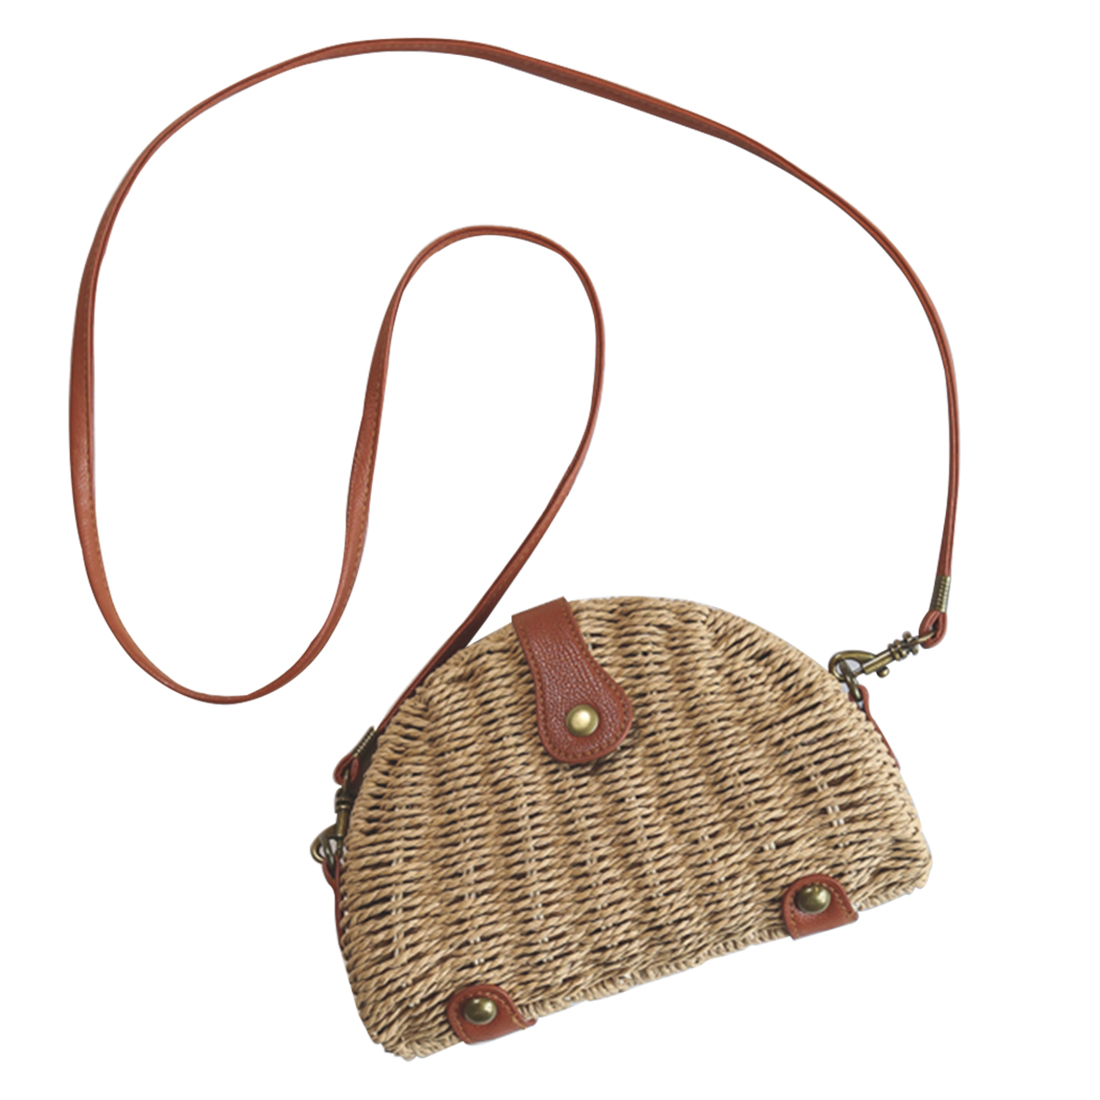 HIPSTEEN 2018 Women Bags Mini Semicircle Woven Straw Cross-Body Bag Handmade Messenger Bag With Removable Shoulder Strap Design